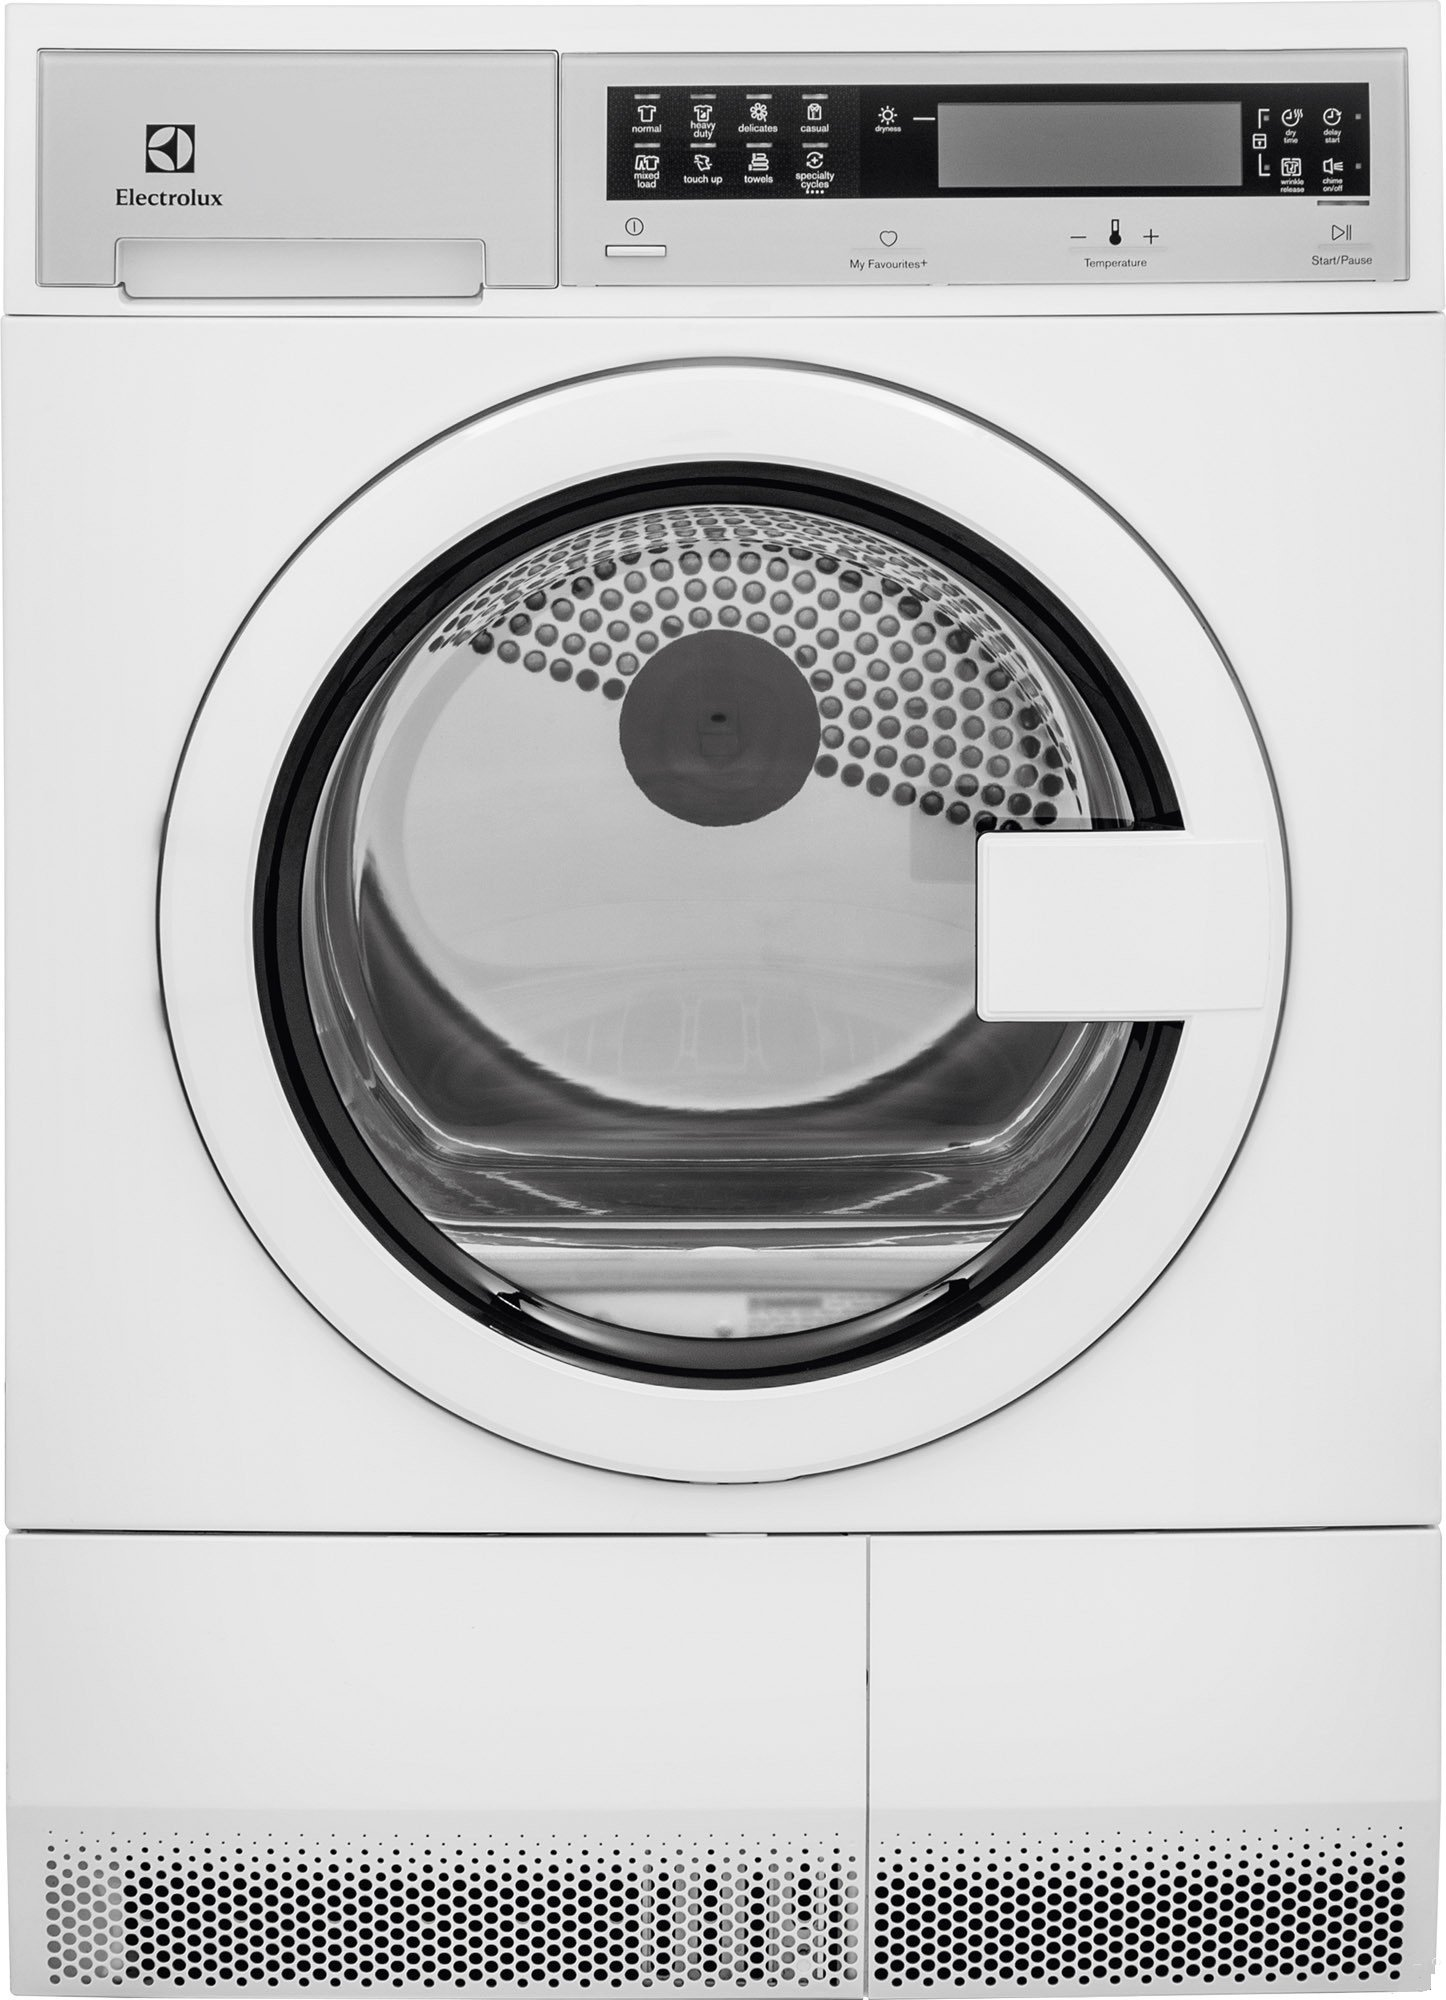 Electrolux EIED200QSW 24'' Compact Front Load Electric Dryer with 4.0 cu. ft. Capacity Stainless Steel Tub 7 Drying Cycles 4 Temperature Settings Delay Start Reversible Door and LED by Electrolux